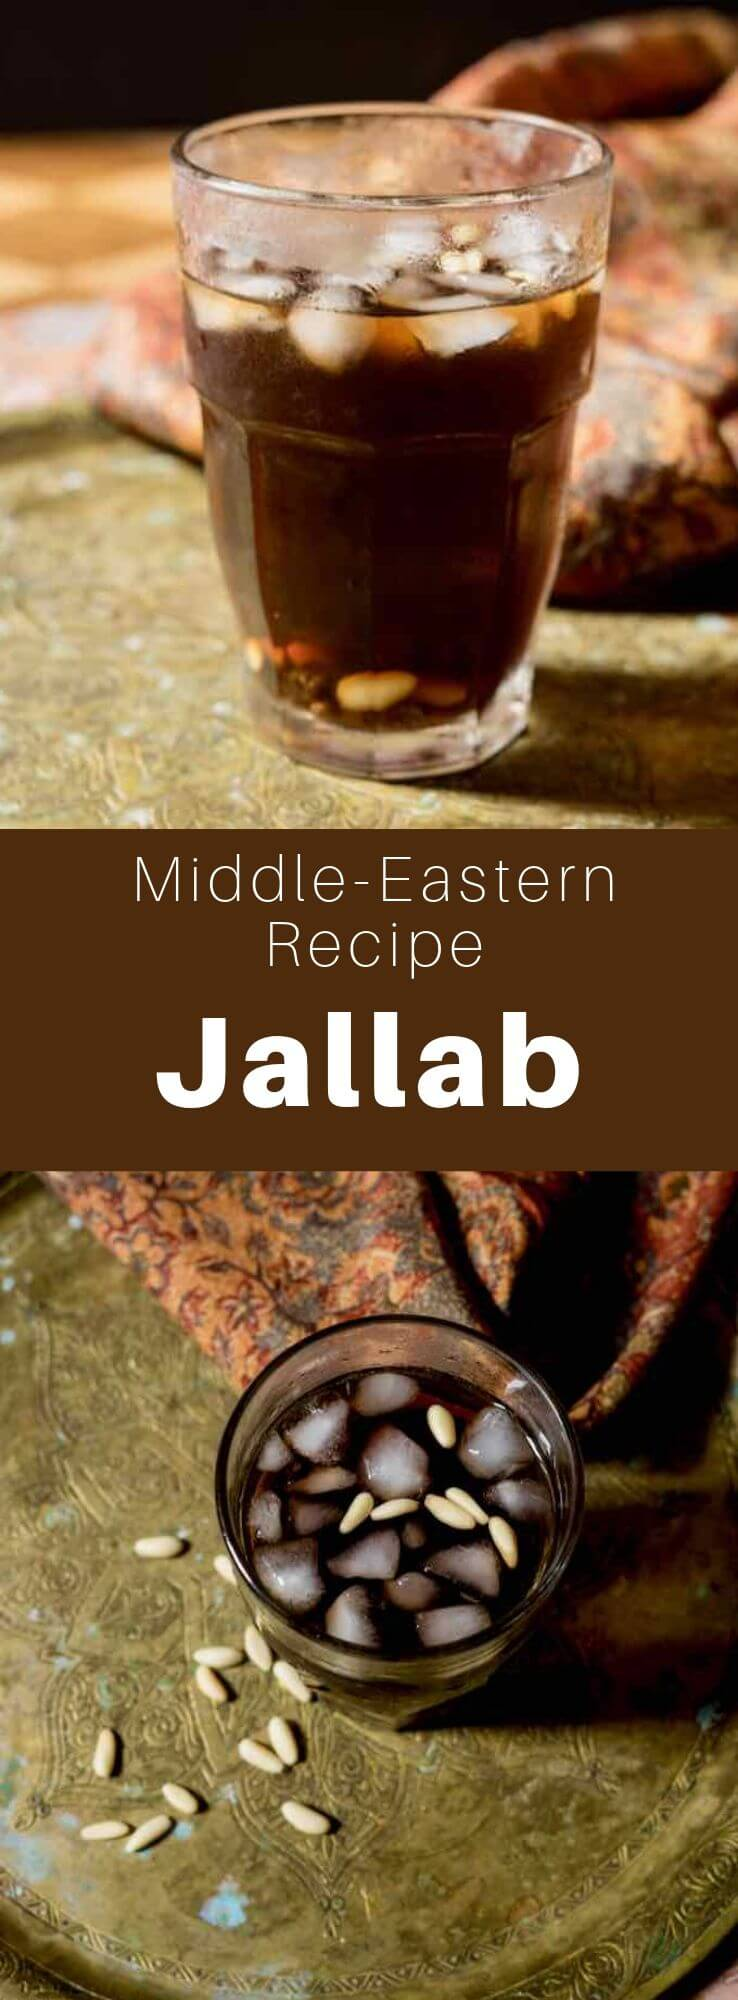 Jallab is a popular fruit syrup in the Middle East, made from molasses of carob, dates, and grapes. It is especially well known in Jordan, Syria, and Lebanon. #Syria #SyrianCuisine #SyrianRecipe #SyrianFood #MiddleEasternCuisine #MiddleEasternRecipe #MiddleEasternFood #ArabCuisine #ArabRecipe #ArabFood #WorldCuisine #196flavors